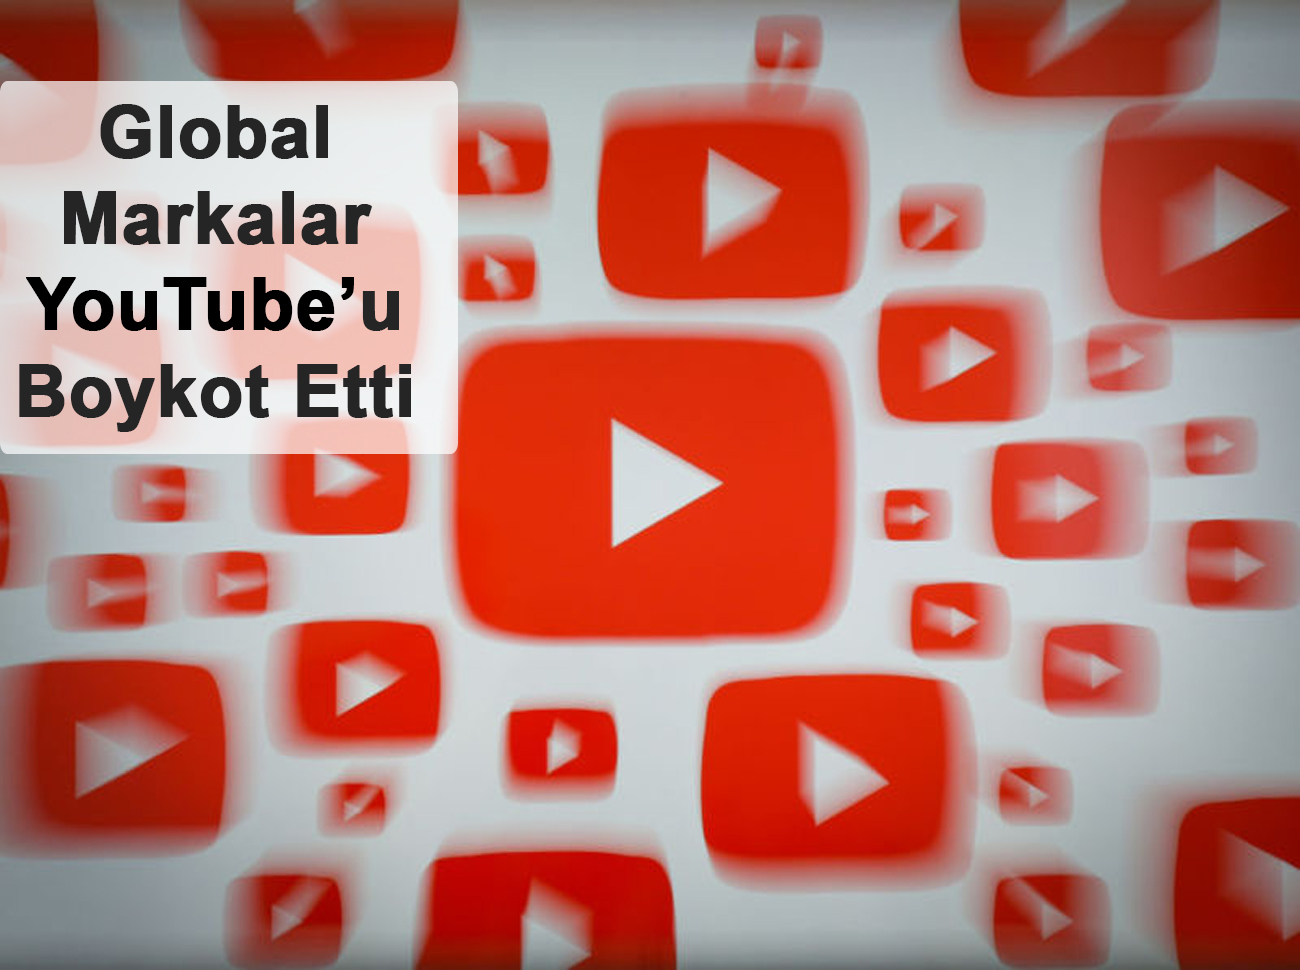 Global Markalar YouTube'u Boykot Etti